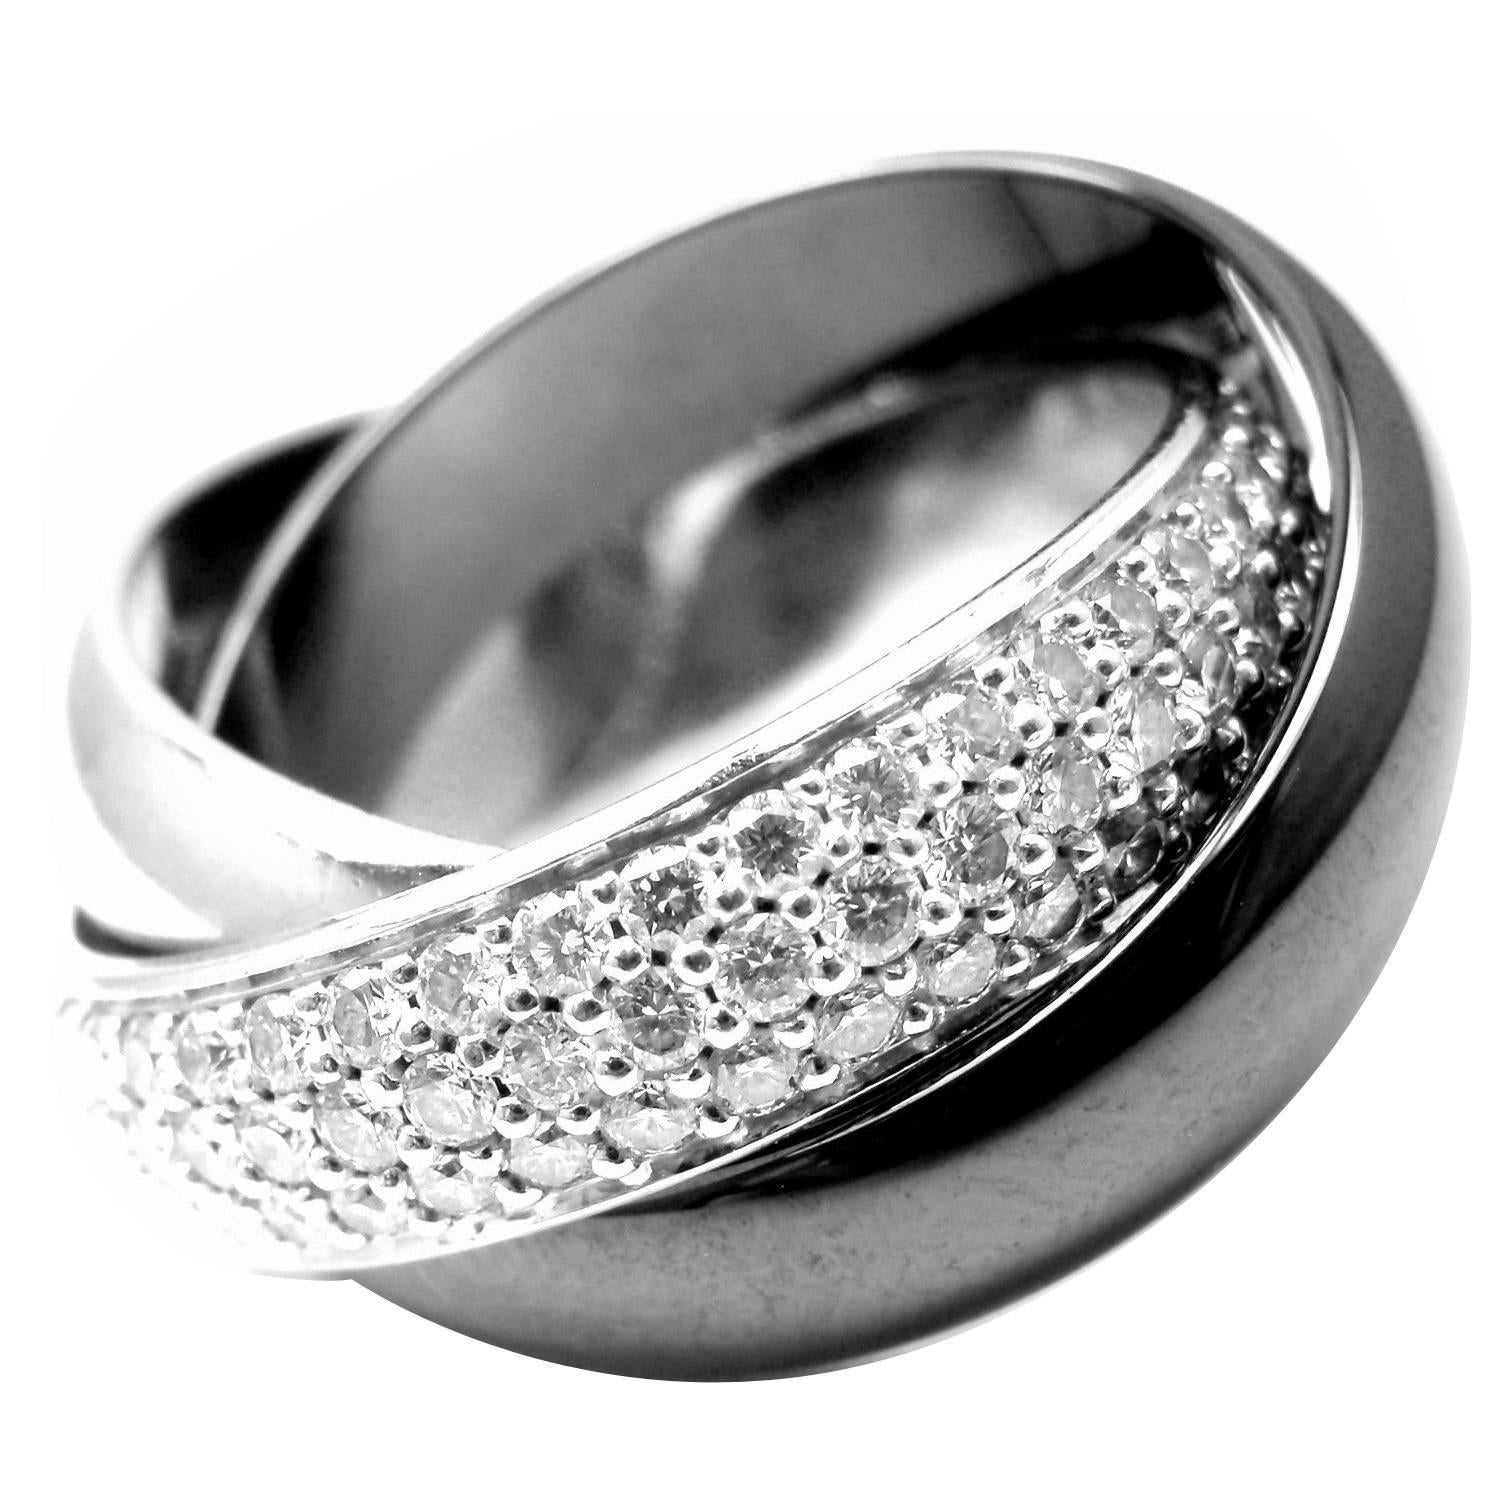 european fashion touch from stainless rings ceramic cubic zircon product layer white mezzanine black rbvajfmktrmadom party jewelry unique love steel tl